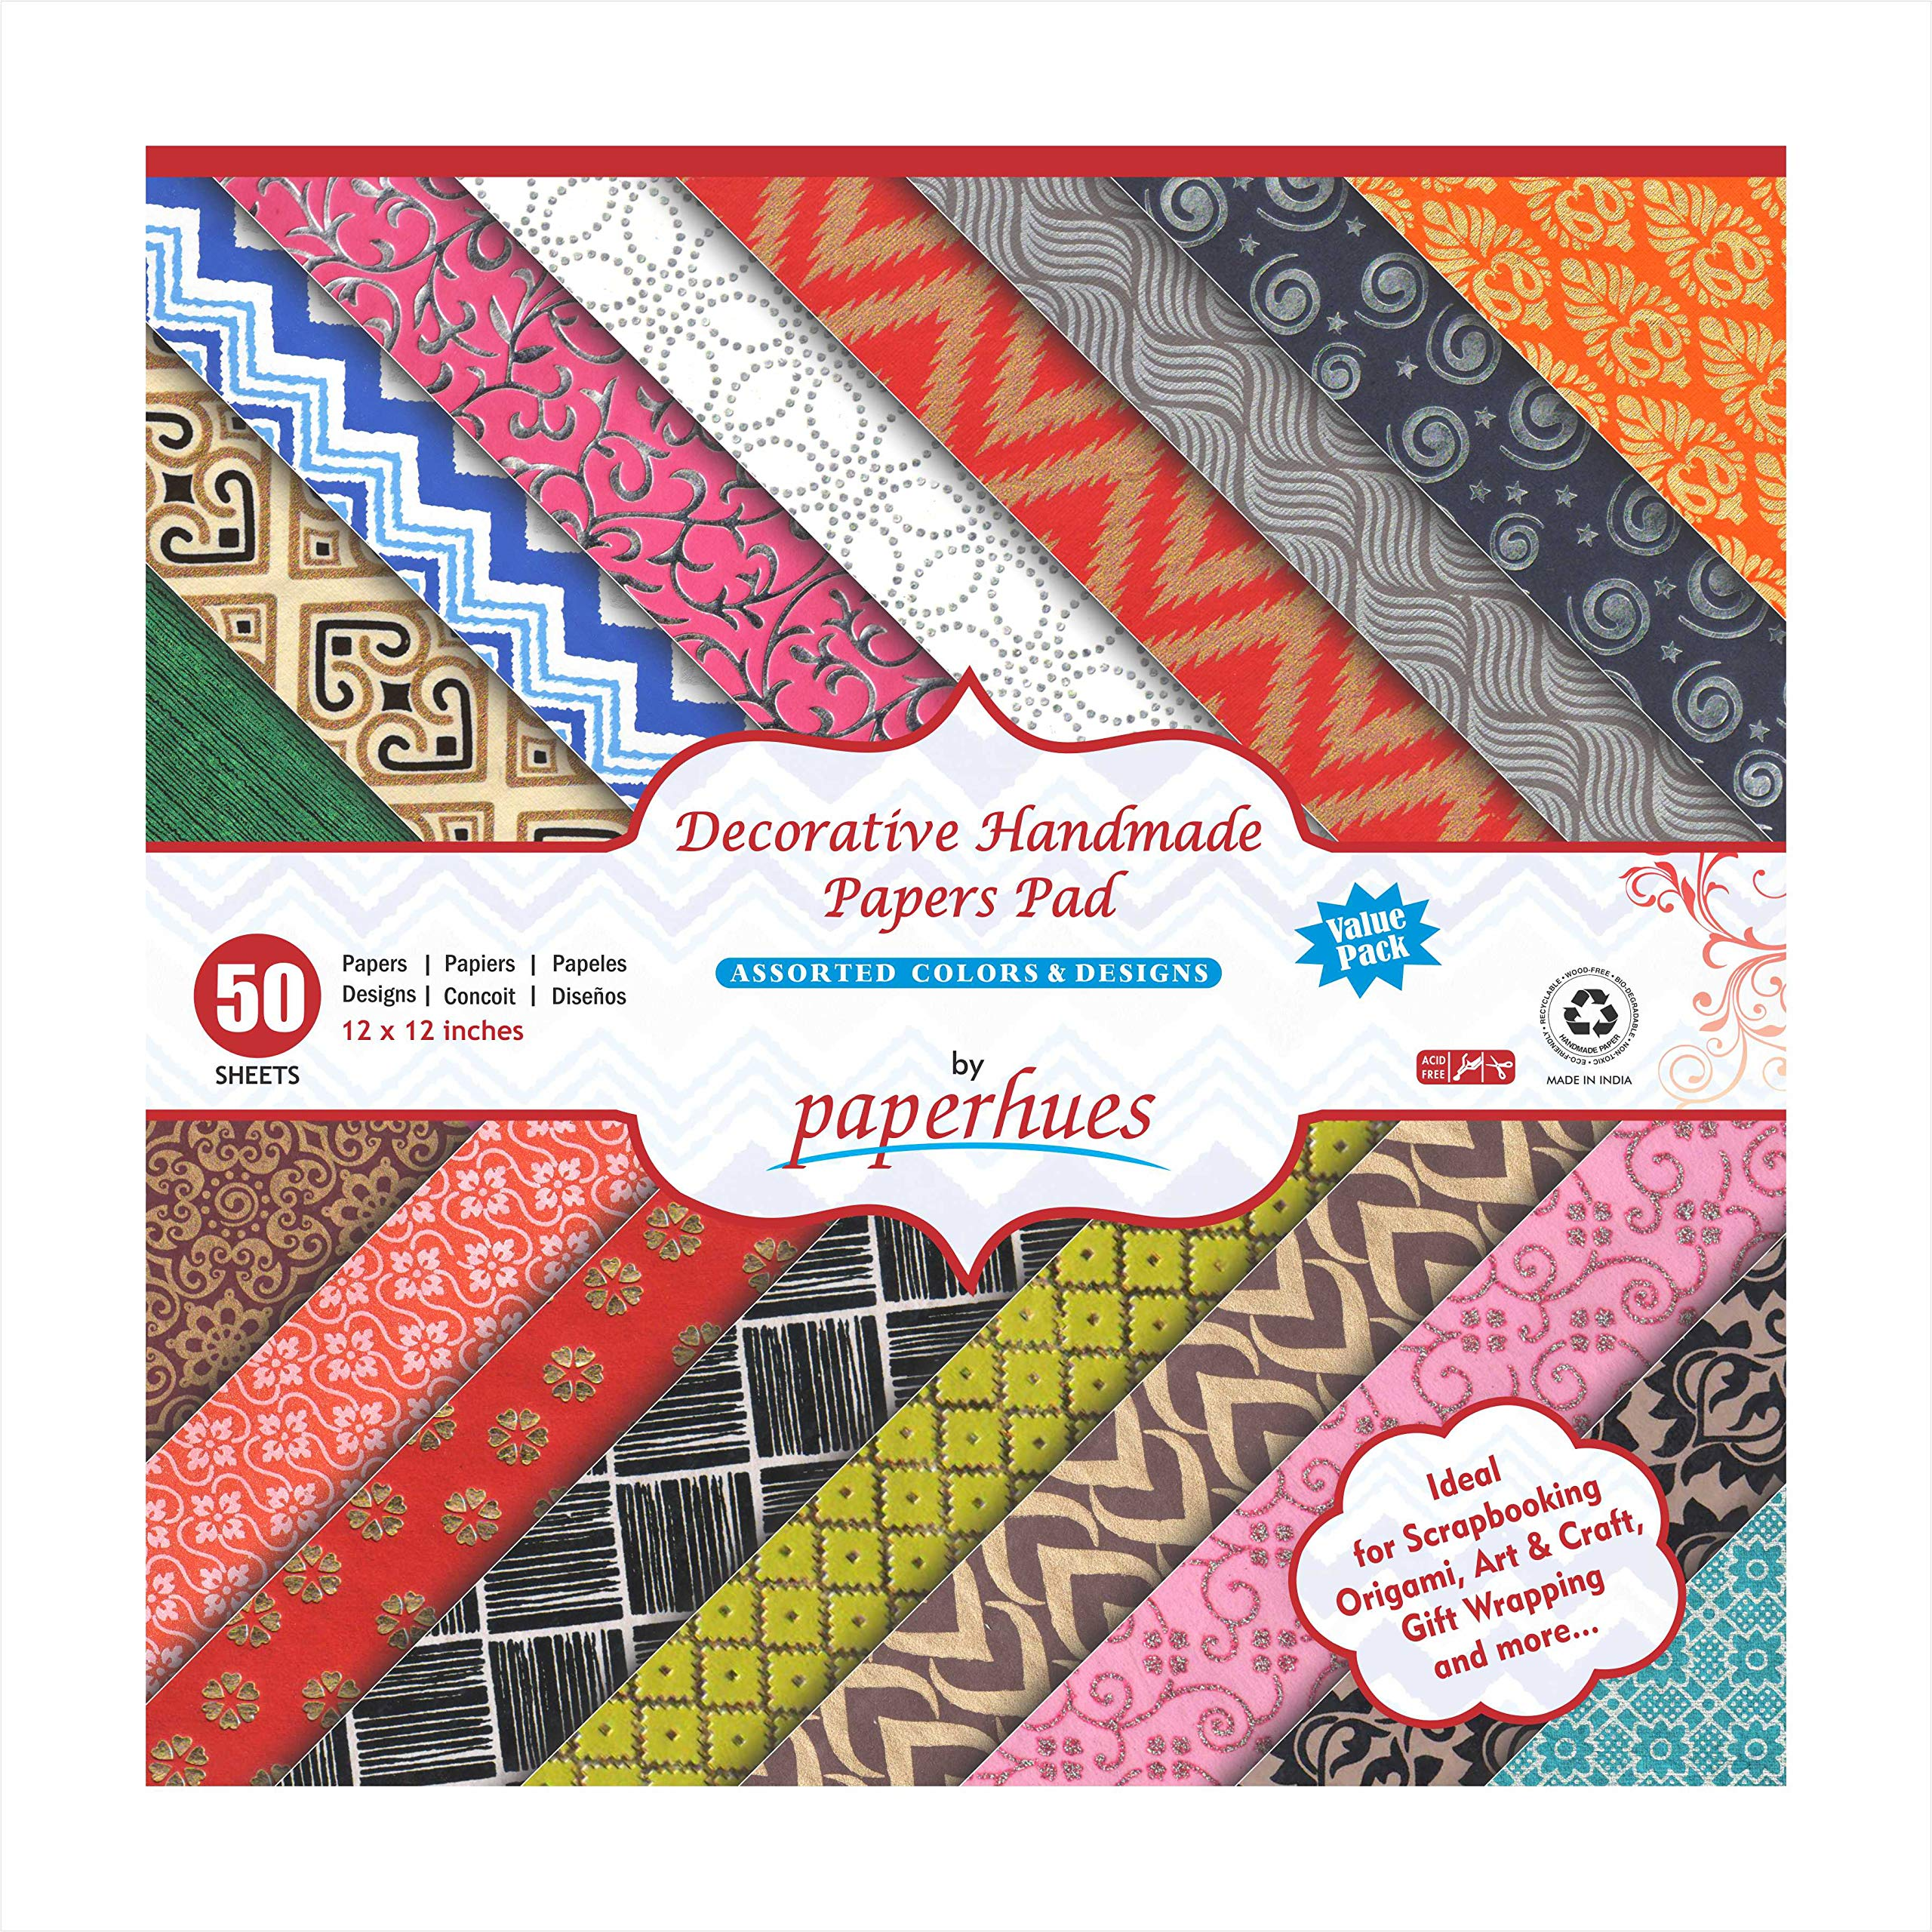 Paperhues Decorative Scrapbook Papers 12x12'' Pad, 50 Sheets. Assorted Colors by Paperhues